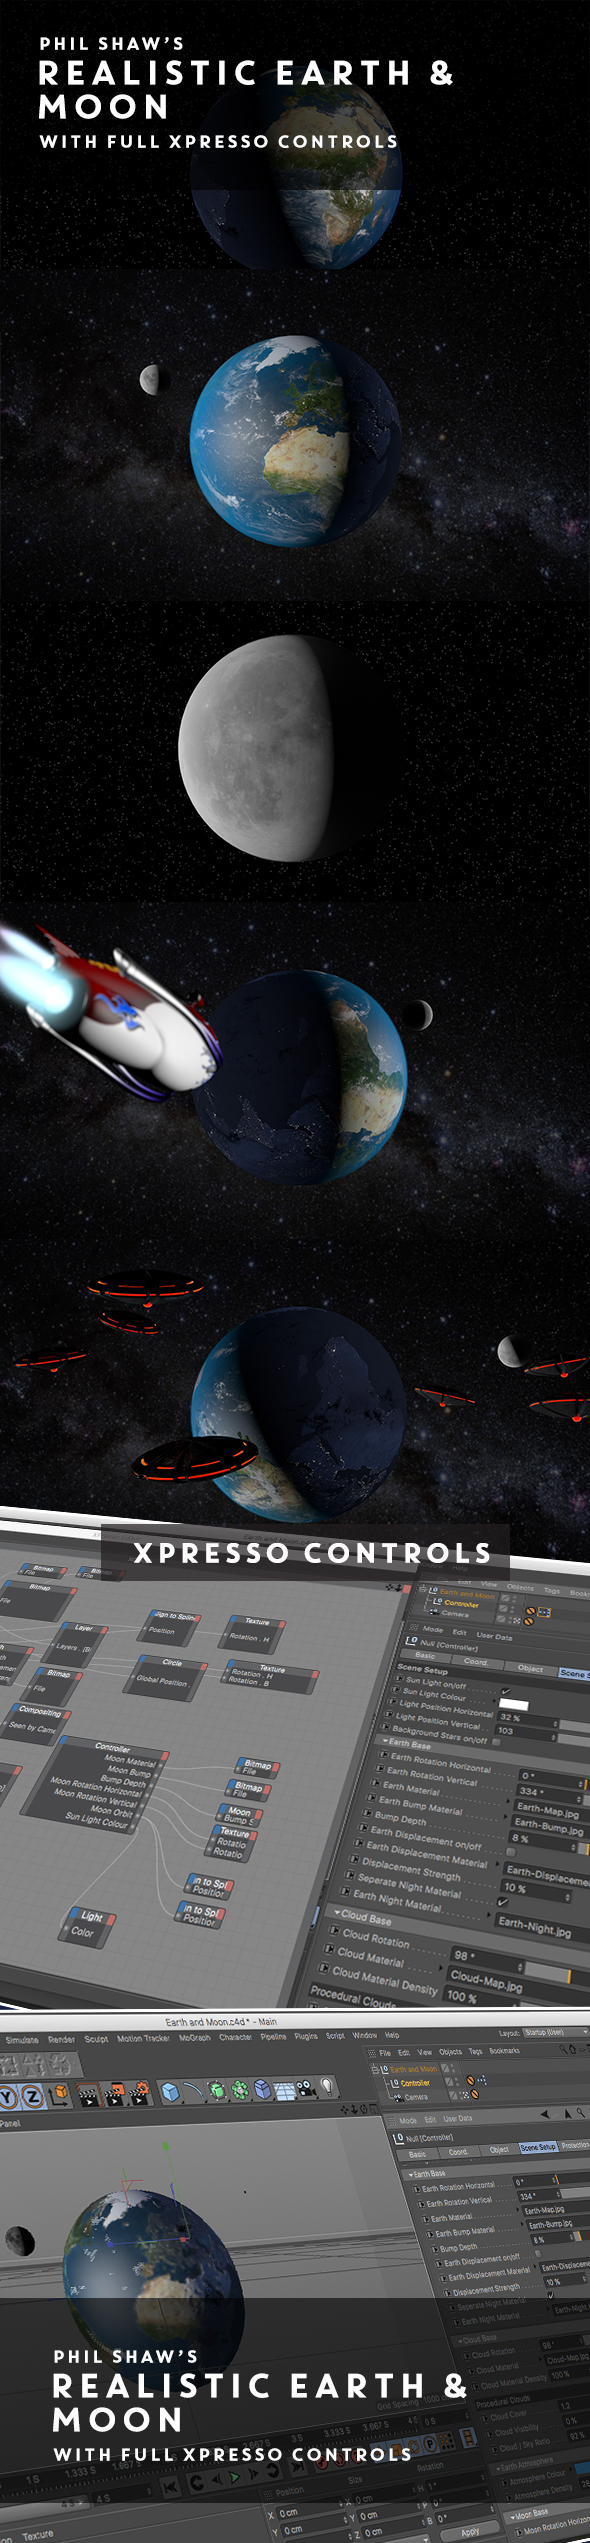 Realistic Earth & Moon with full Xpresso Control - 3DOcean Item for Sale